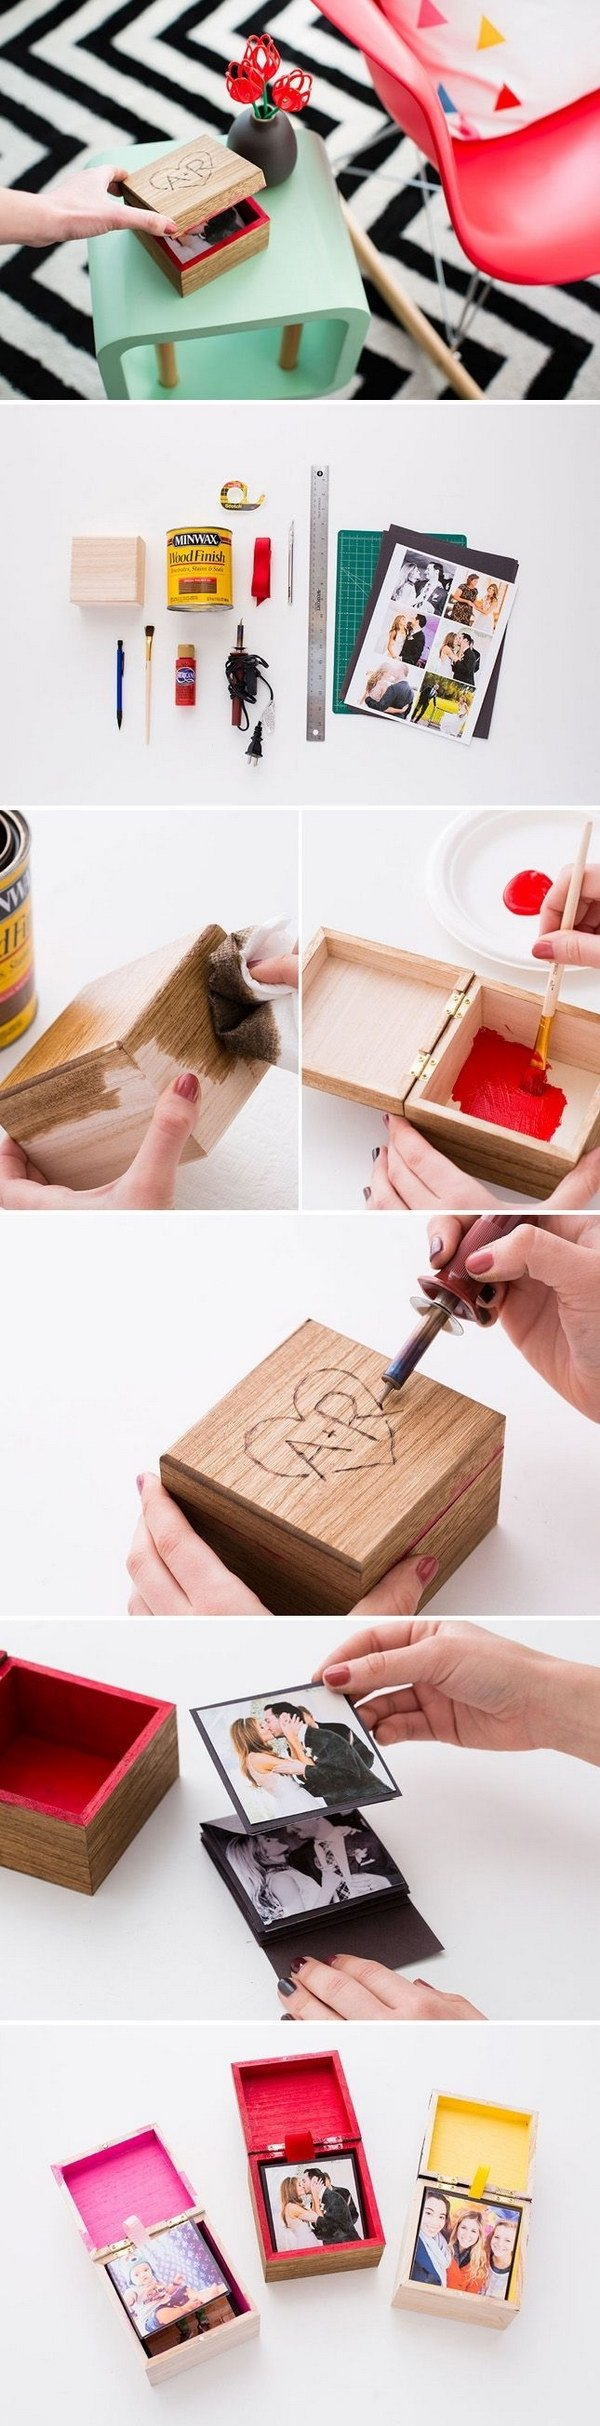 10 Lovable Good Gift Ideas For Boyfriends 25 diy gifts for him with lots of tutorials 2017 9 2020